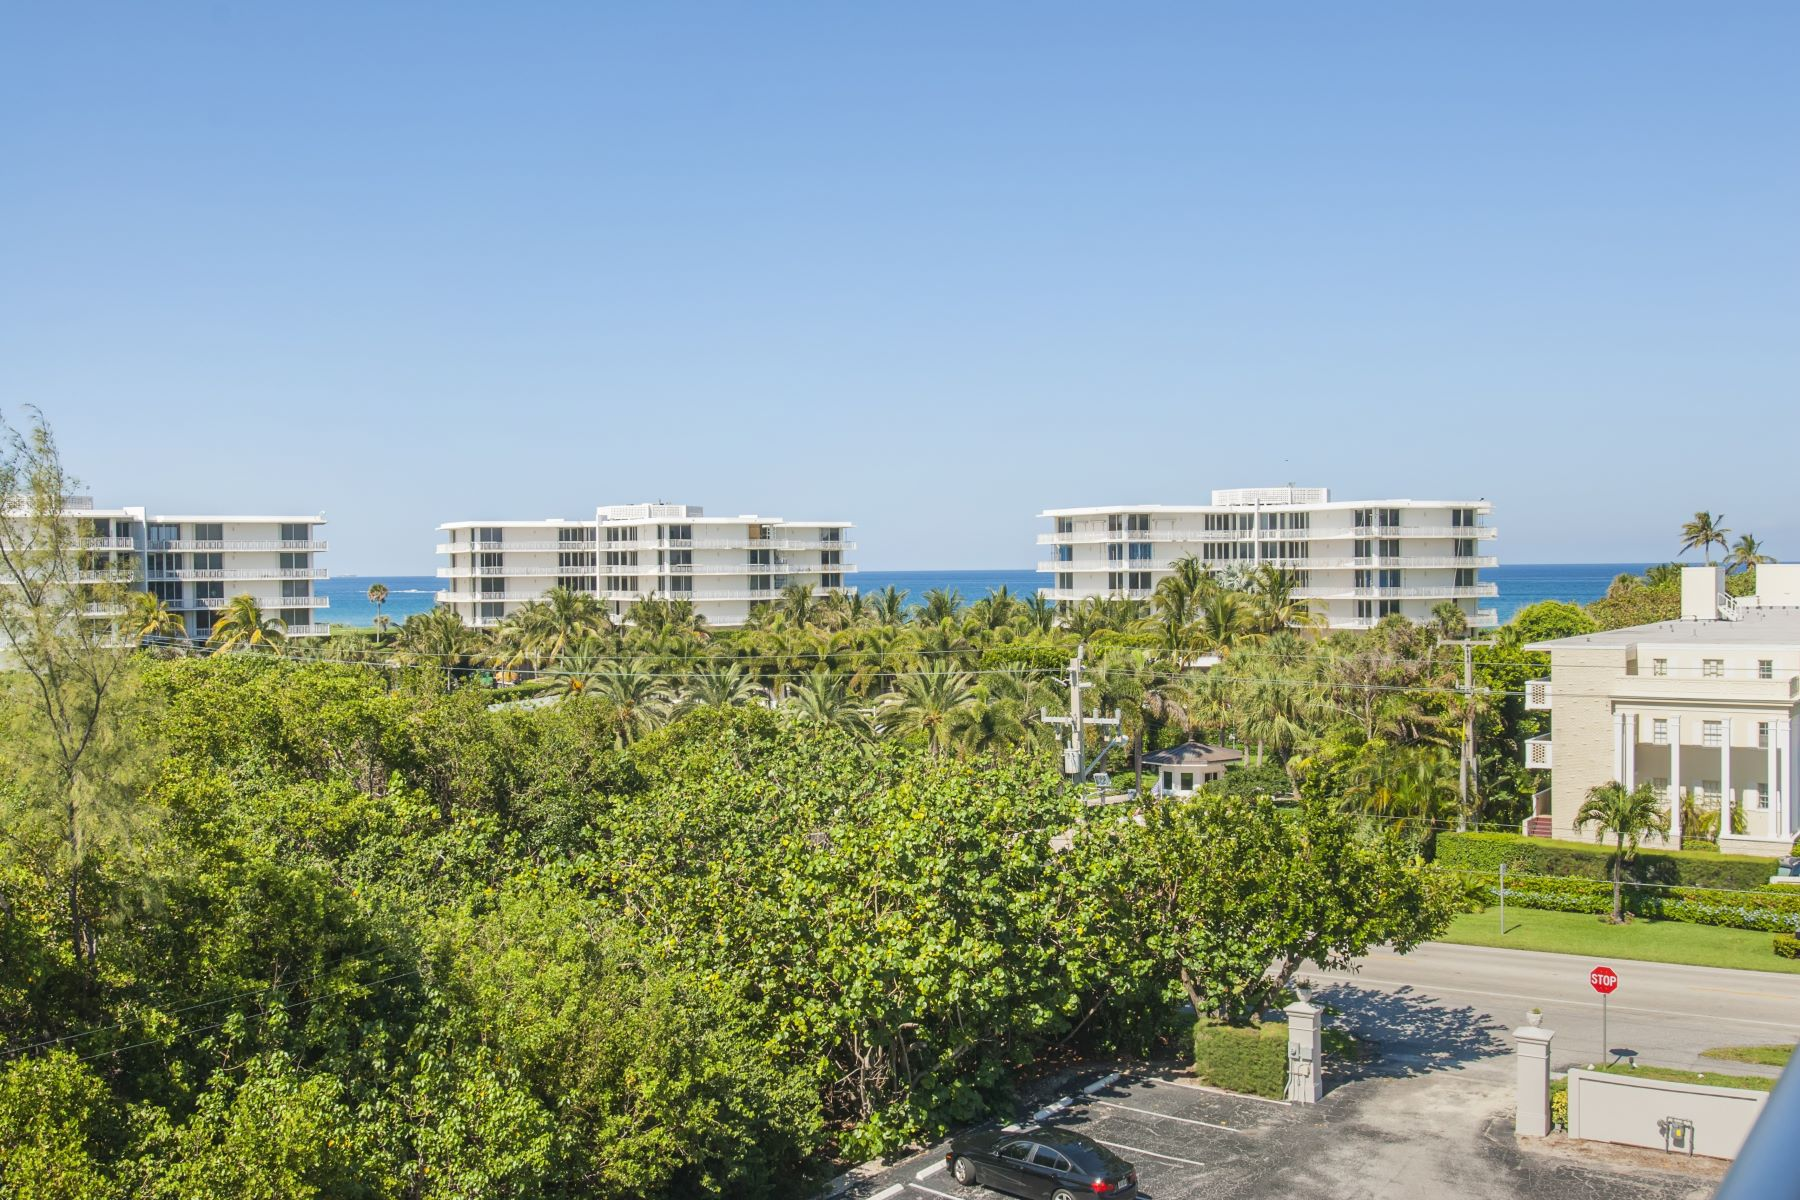 for Sale at Island Hideaway with Relaxed Ambiance & Private Gated Beach Access 2560 S Ocean Boulevard 612 Palm Beach, Florida 33480 United States